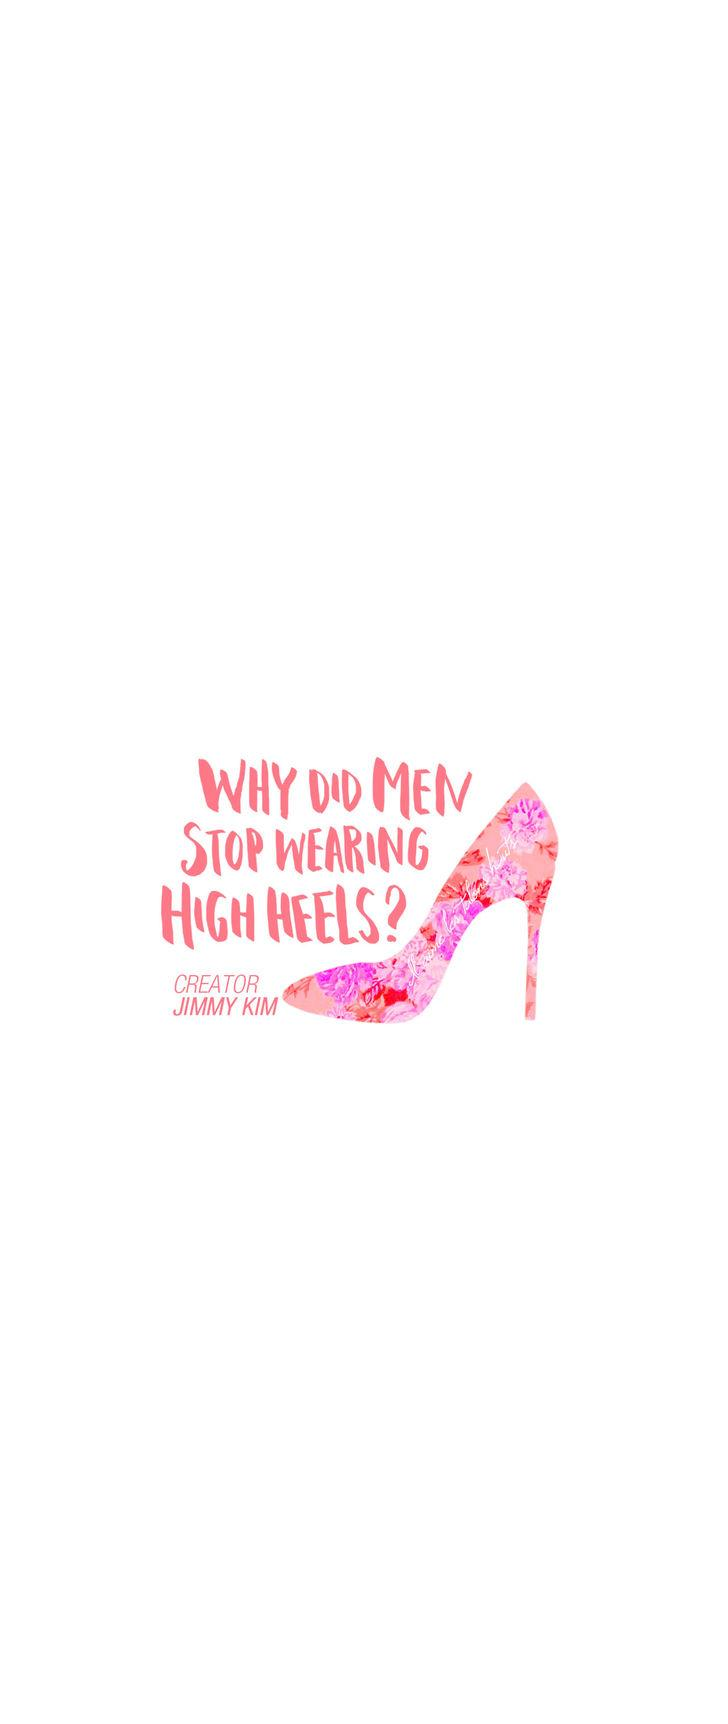 Why Did Men Stop Wearing High Heels? - Chapter 2